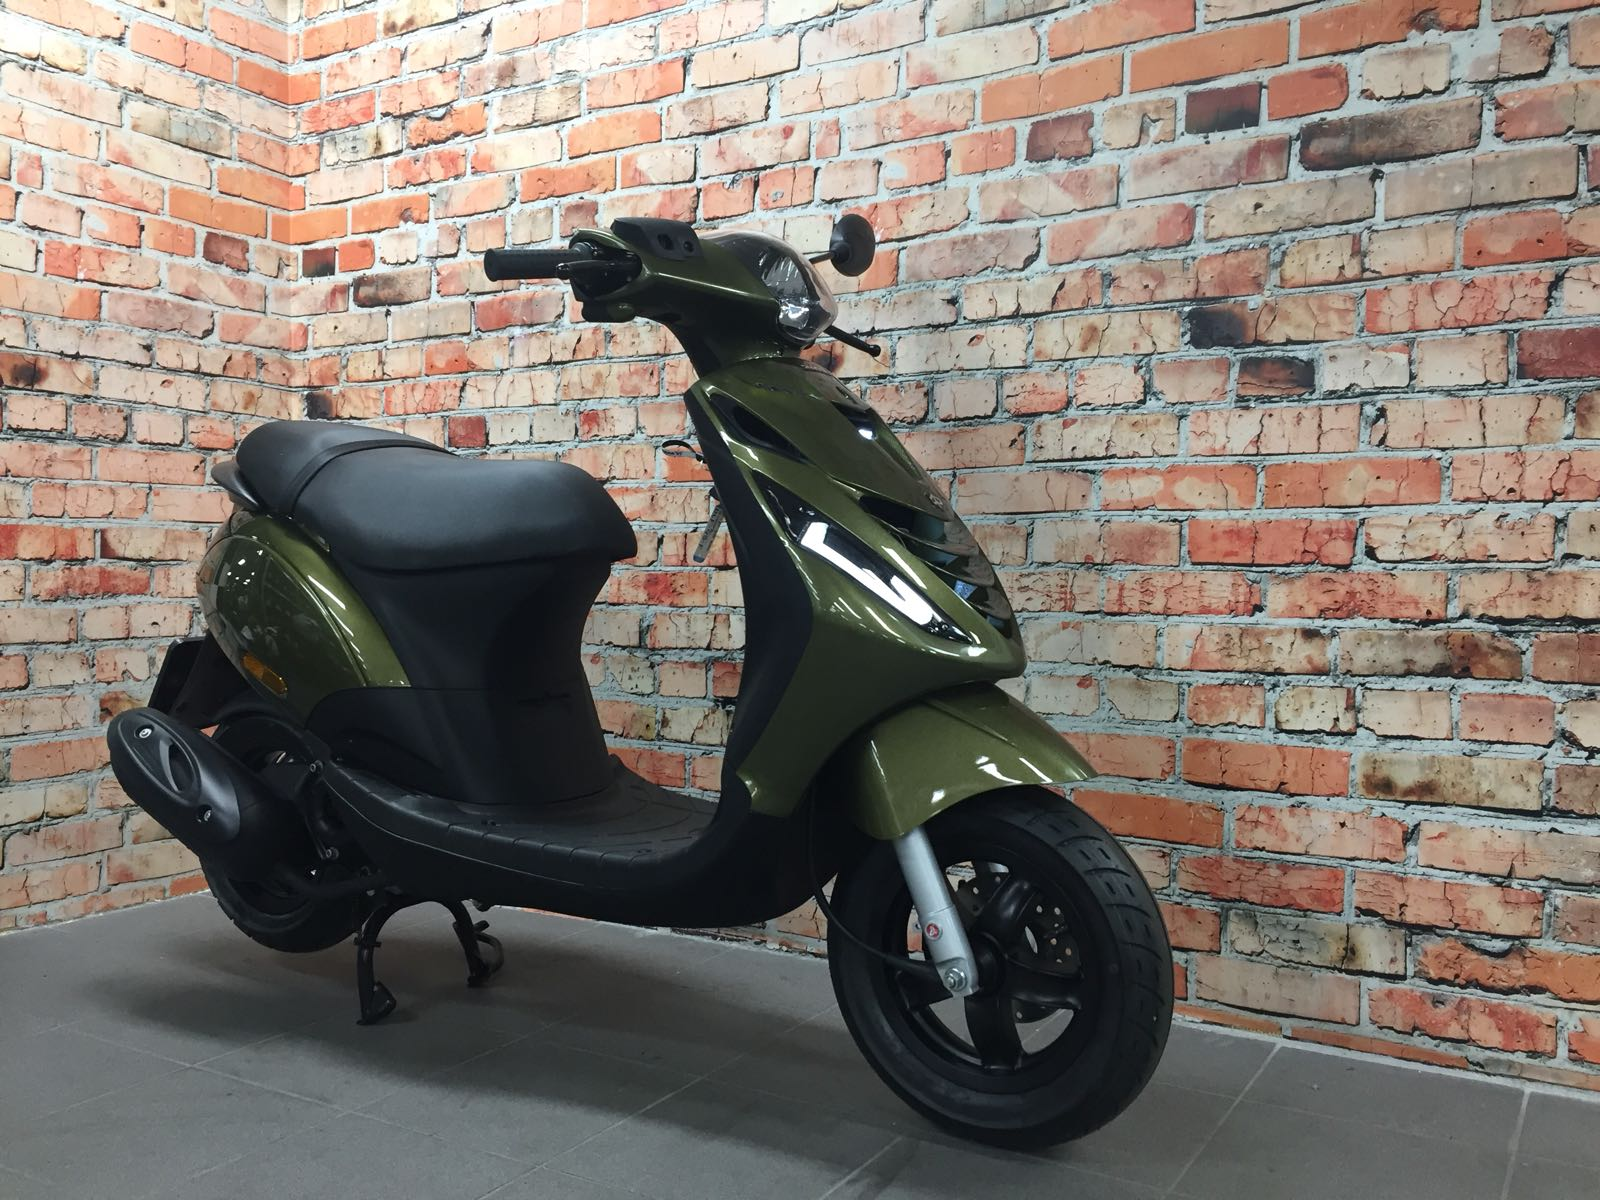 piaggio zip 4t iget euro 4 custom olive green metallic de jager scooters. Black Bedroom Furniture Sets. Home Design Ideas